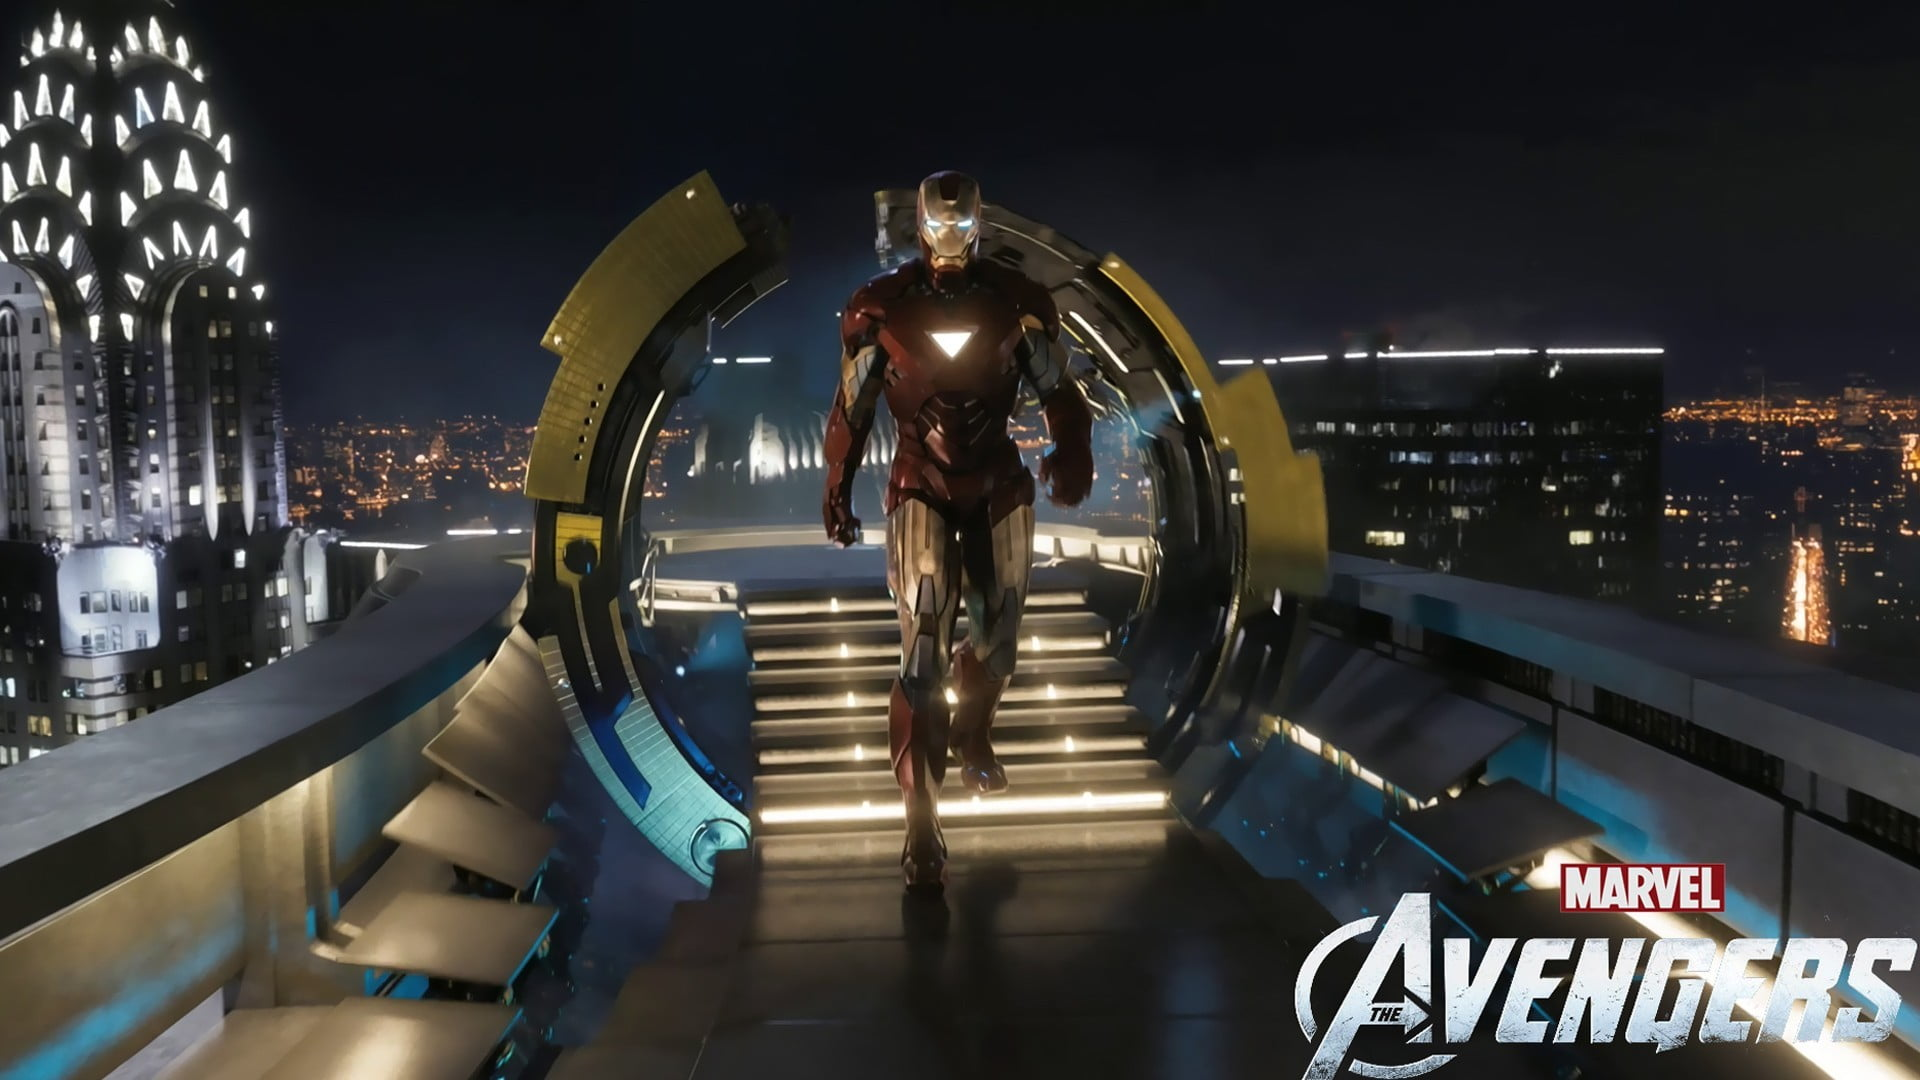 ironman, marvel studios wallpaper